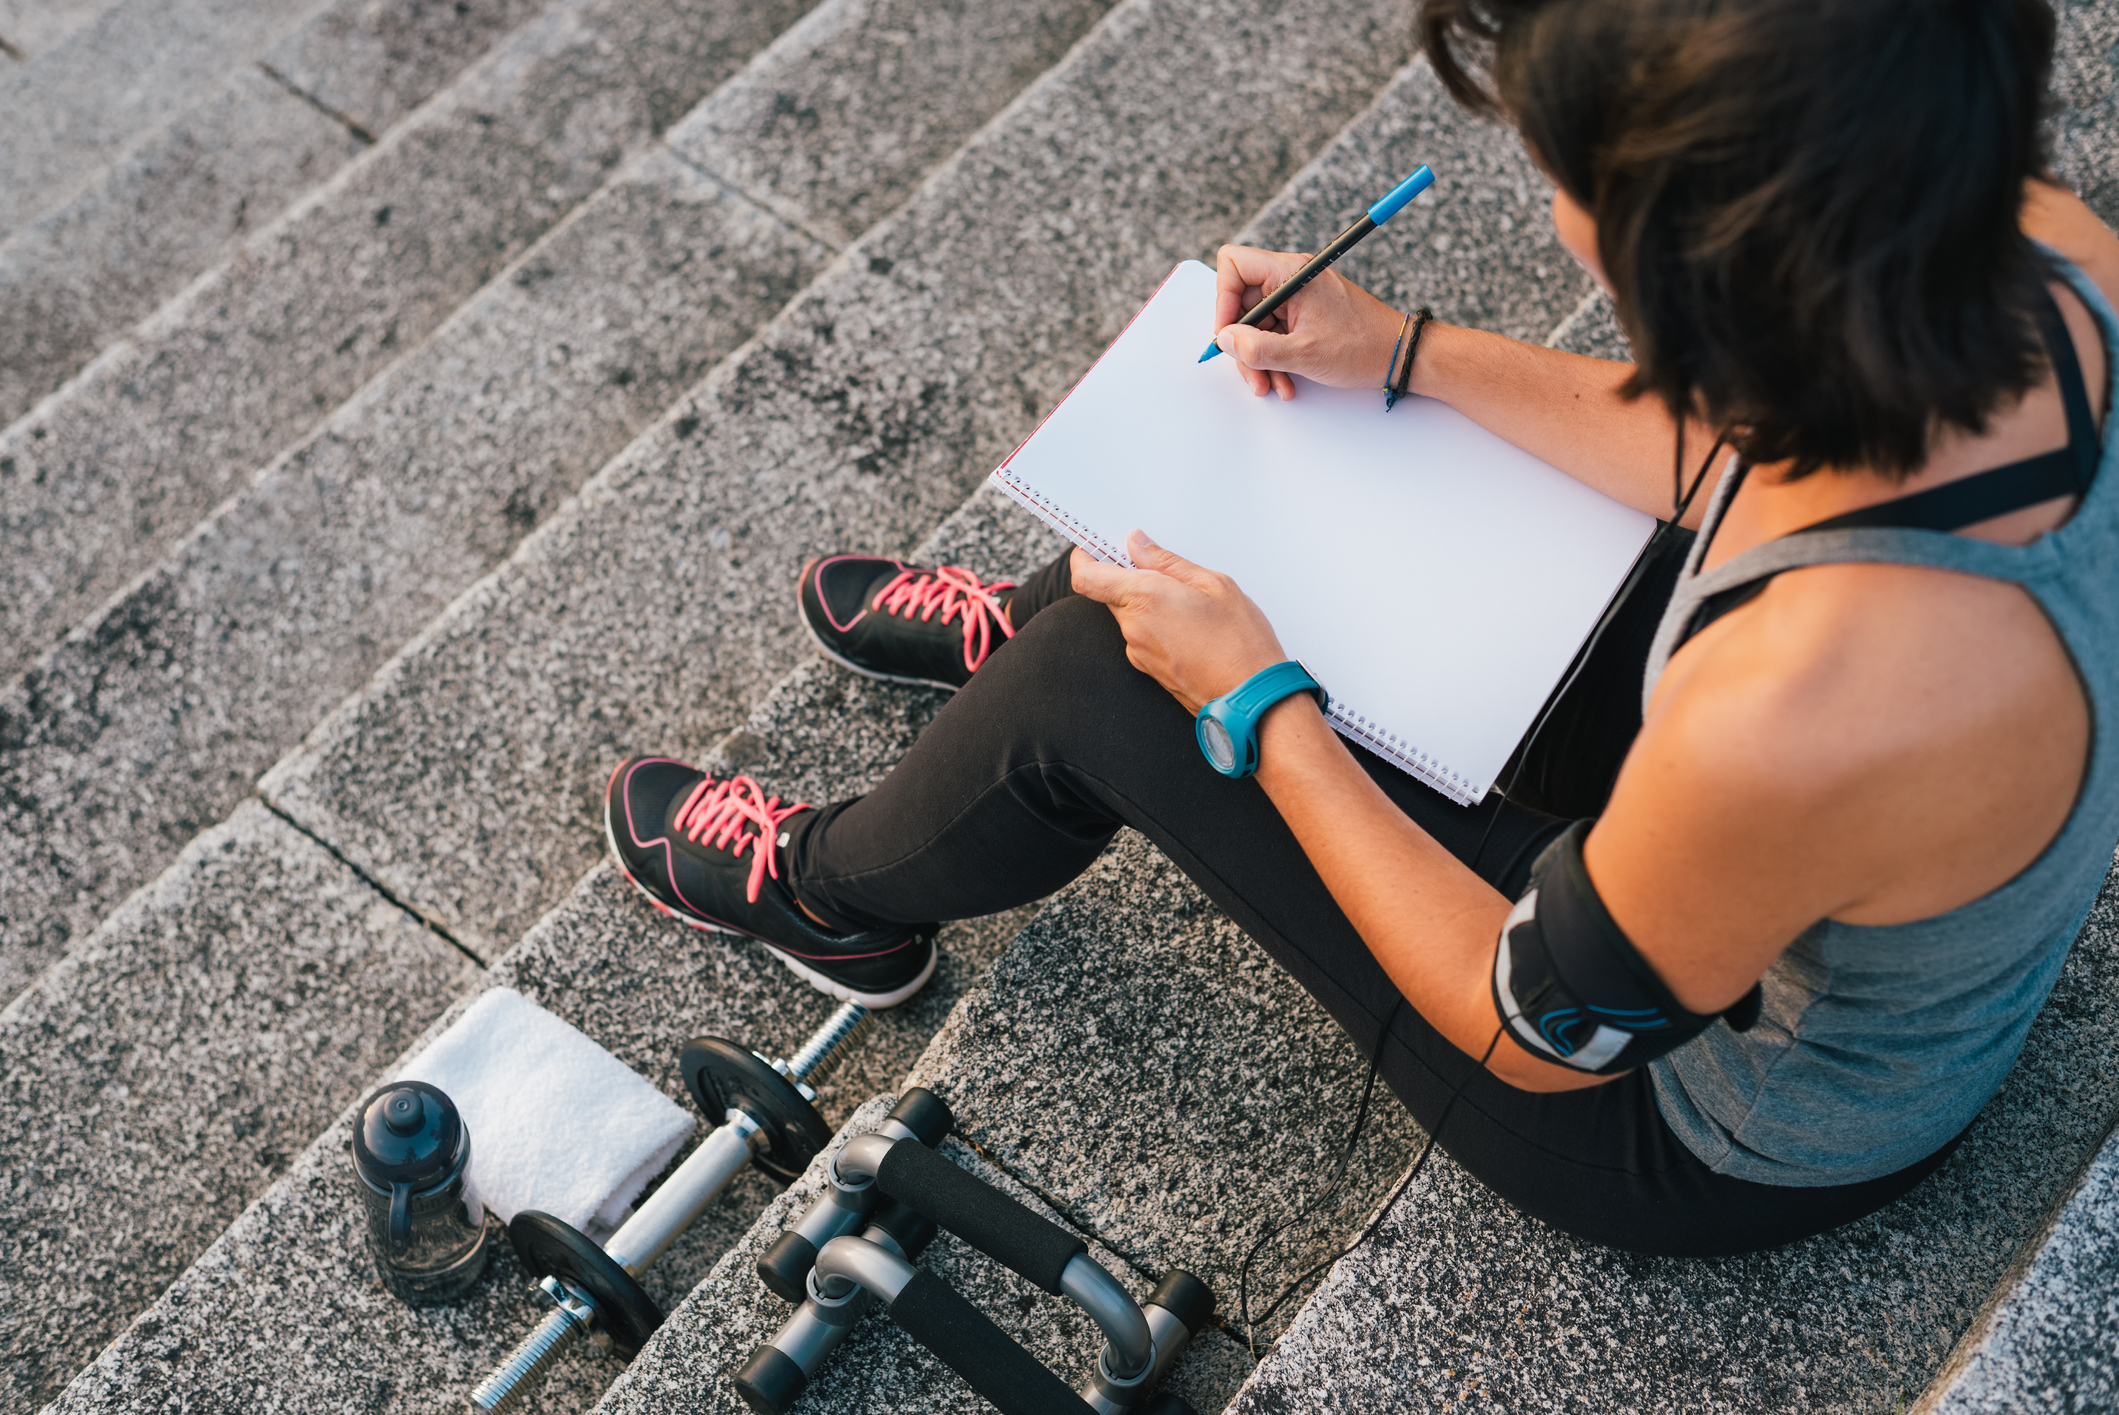 Fitness sporty woman writing on blank notepad while sitting on urban stone stairs before exercises workout routine. Female athlete focusing on her goals - tips to get motivated to exercise